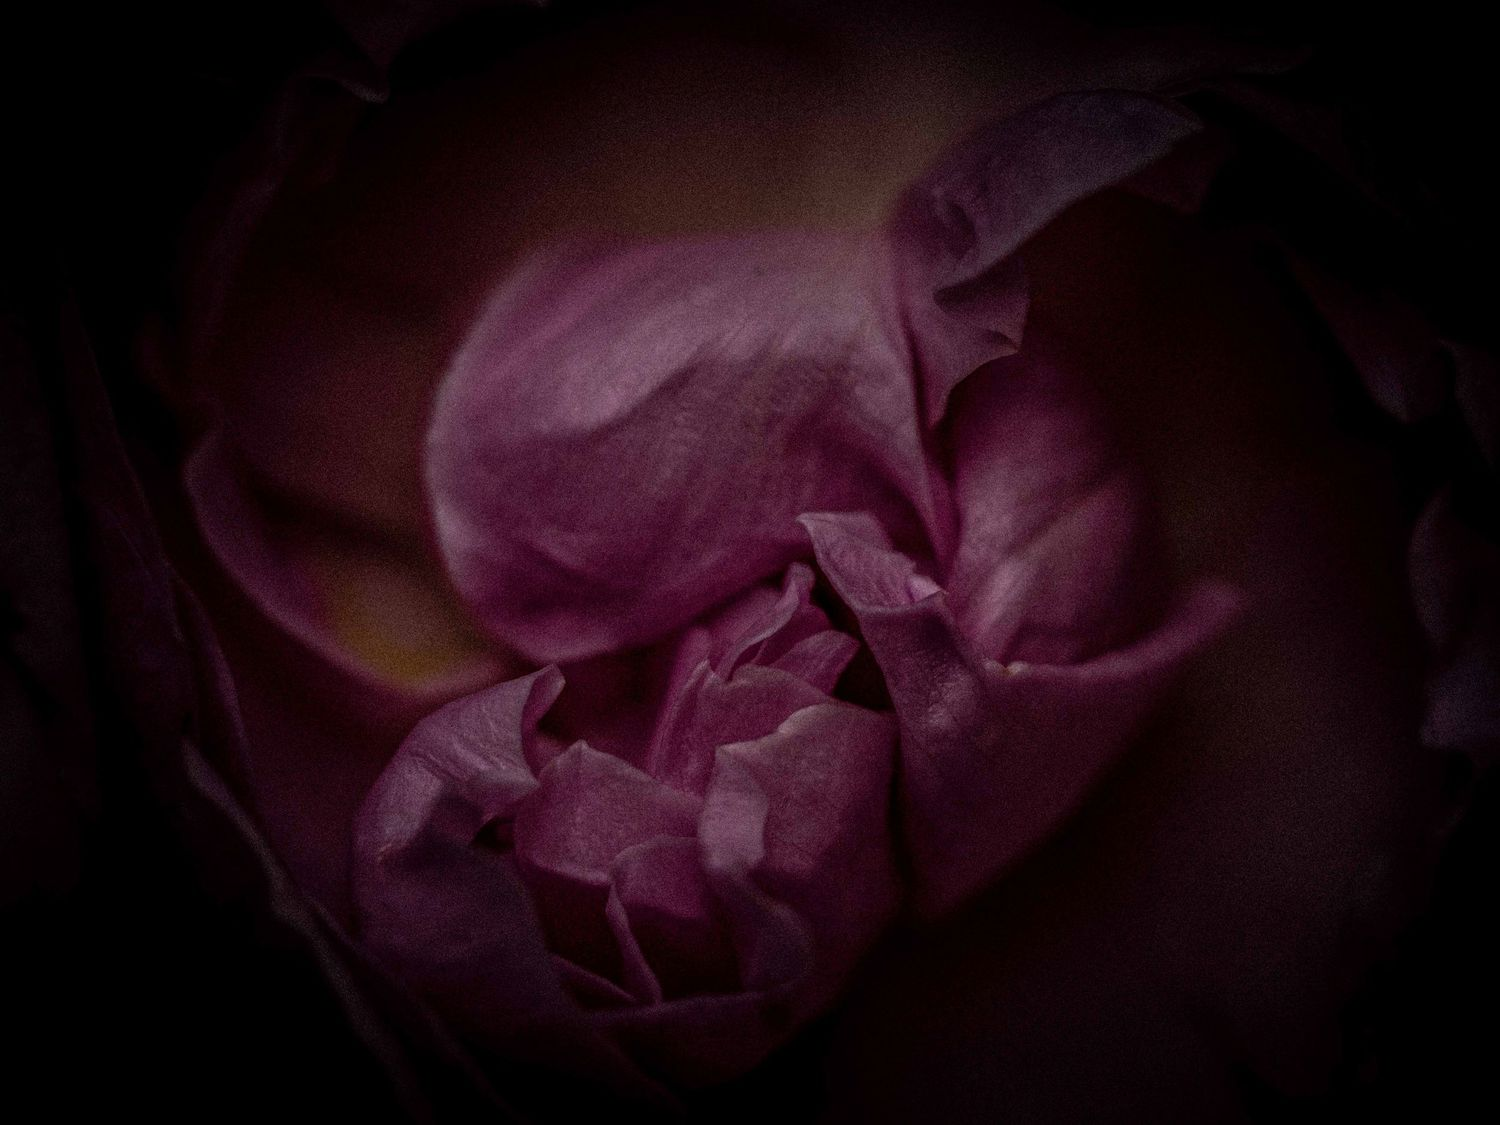 Dark and moody detail of delicate pink, purple and crimson rose blooms